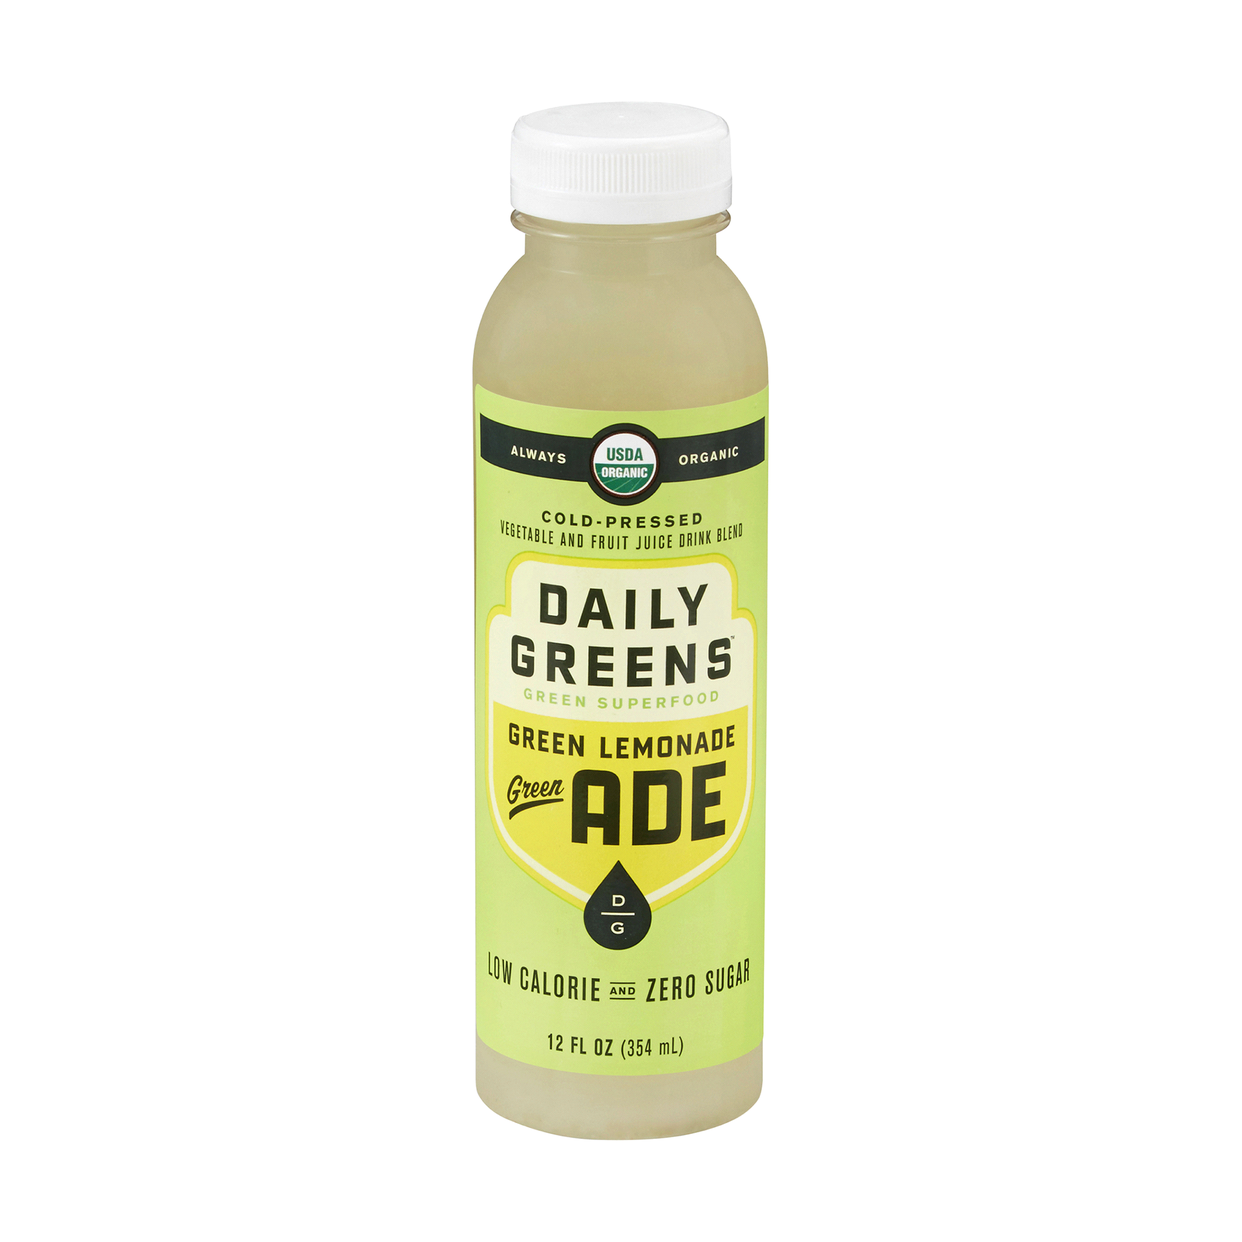 daily greens lemonade - green lemonade